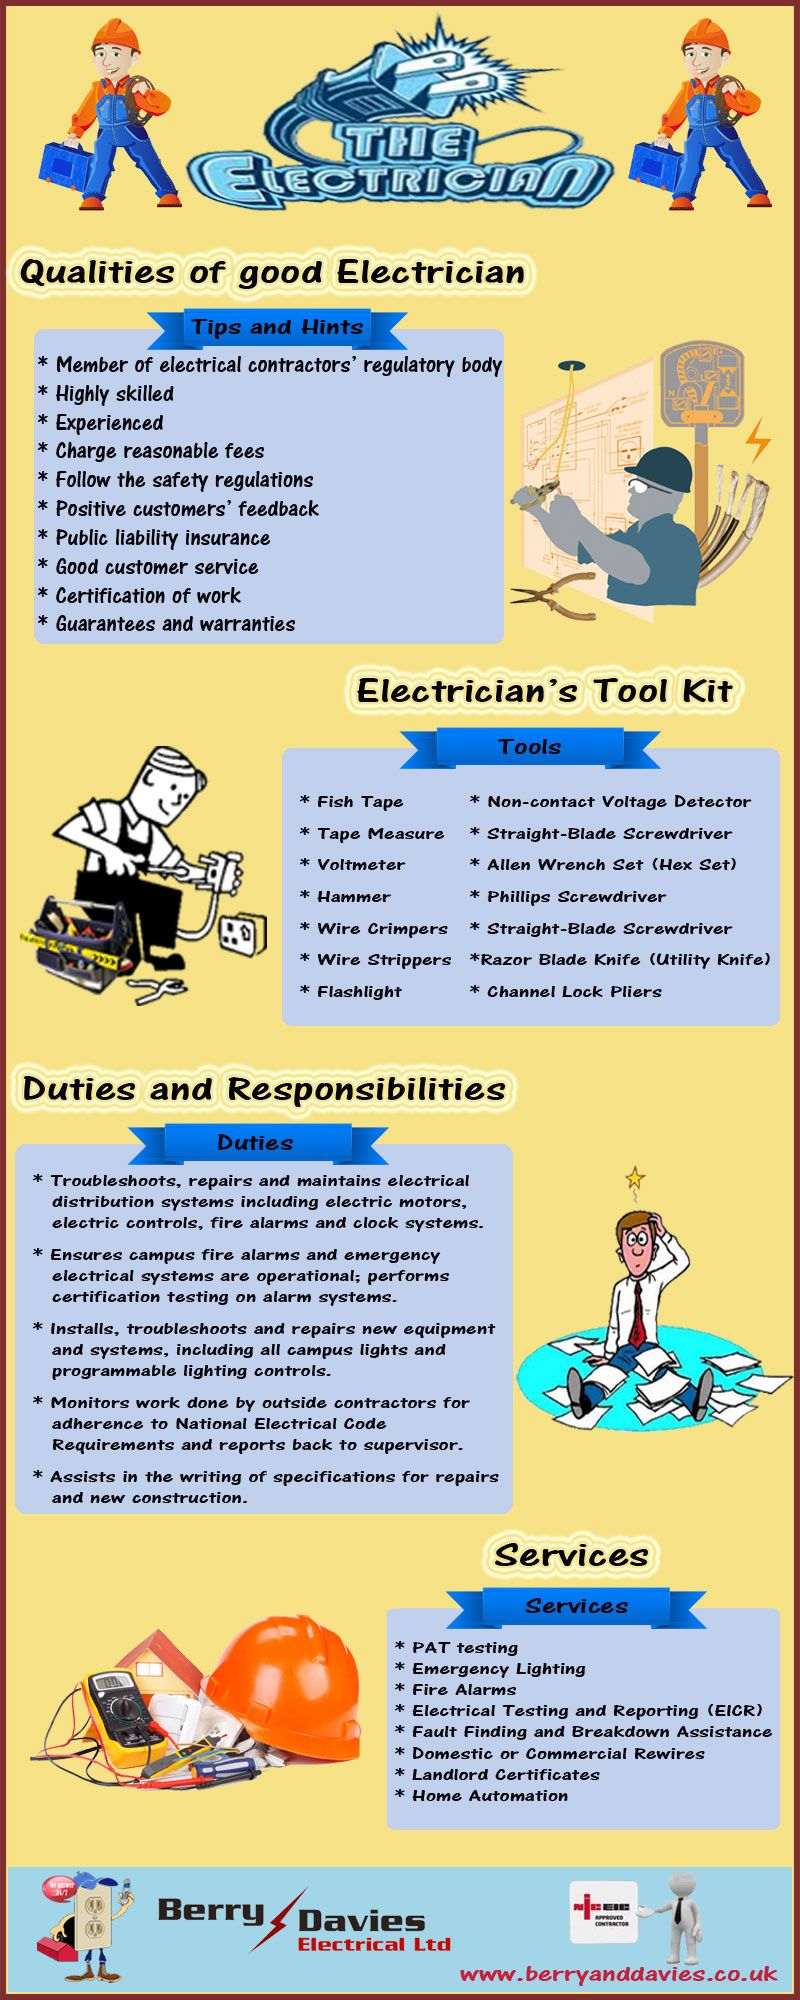 An electrician is a person who has special skills in